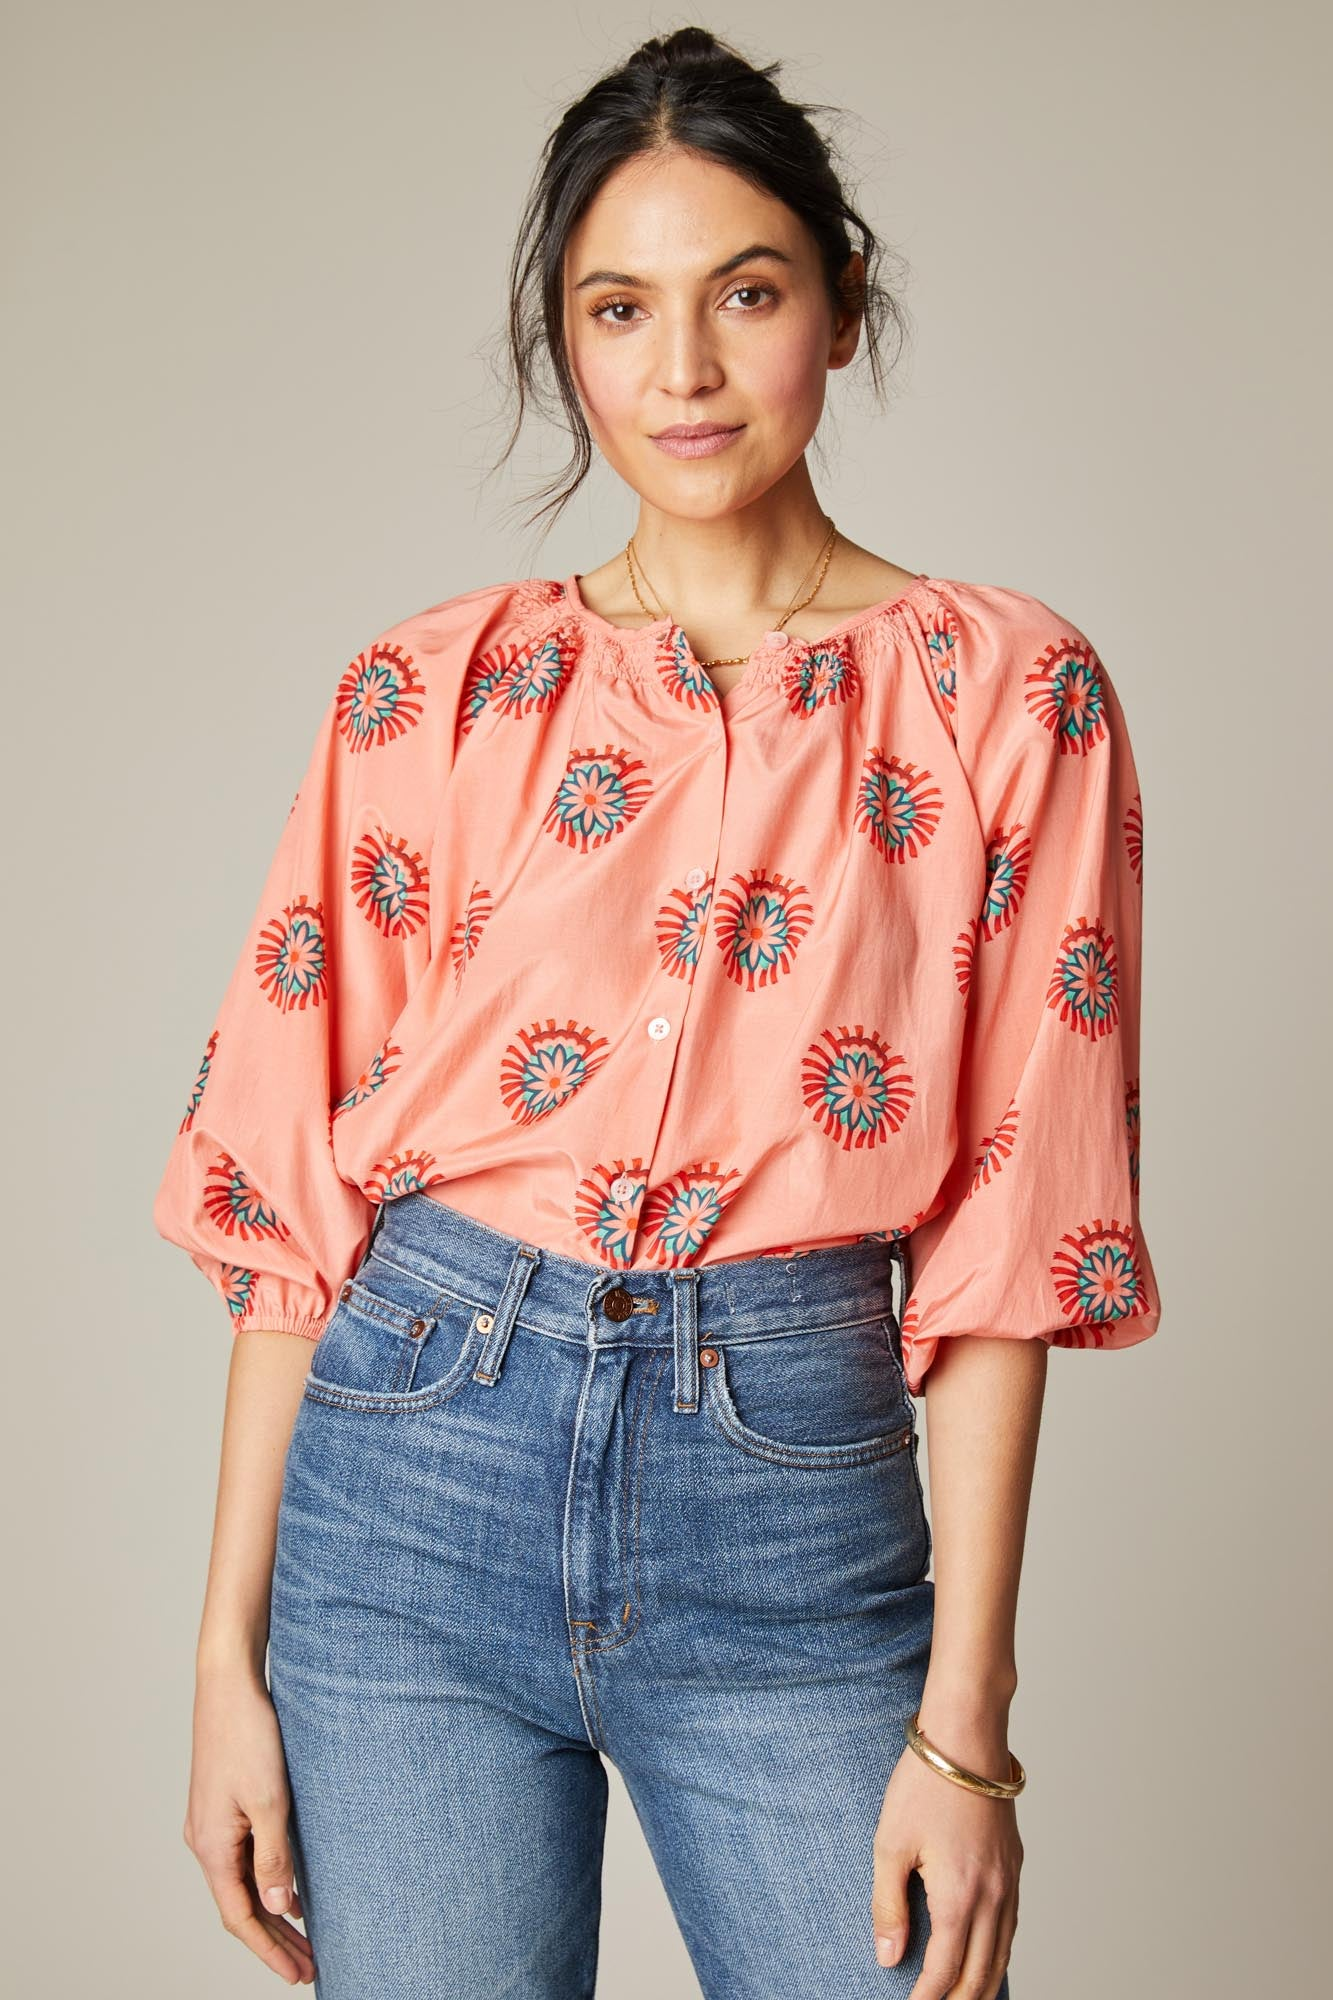 The Classic Blouse | Morning Medallions